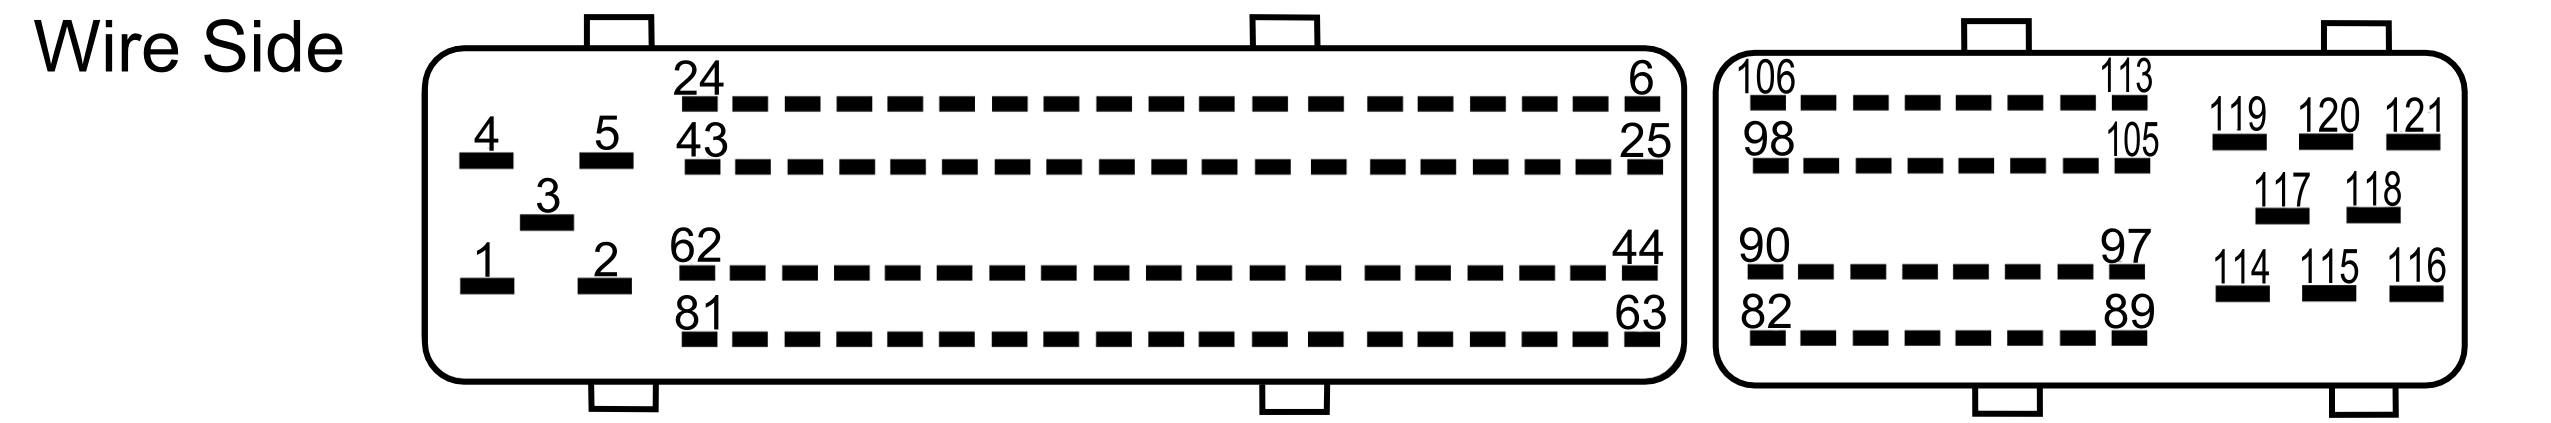 File Connector 121 Pinout Jpg